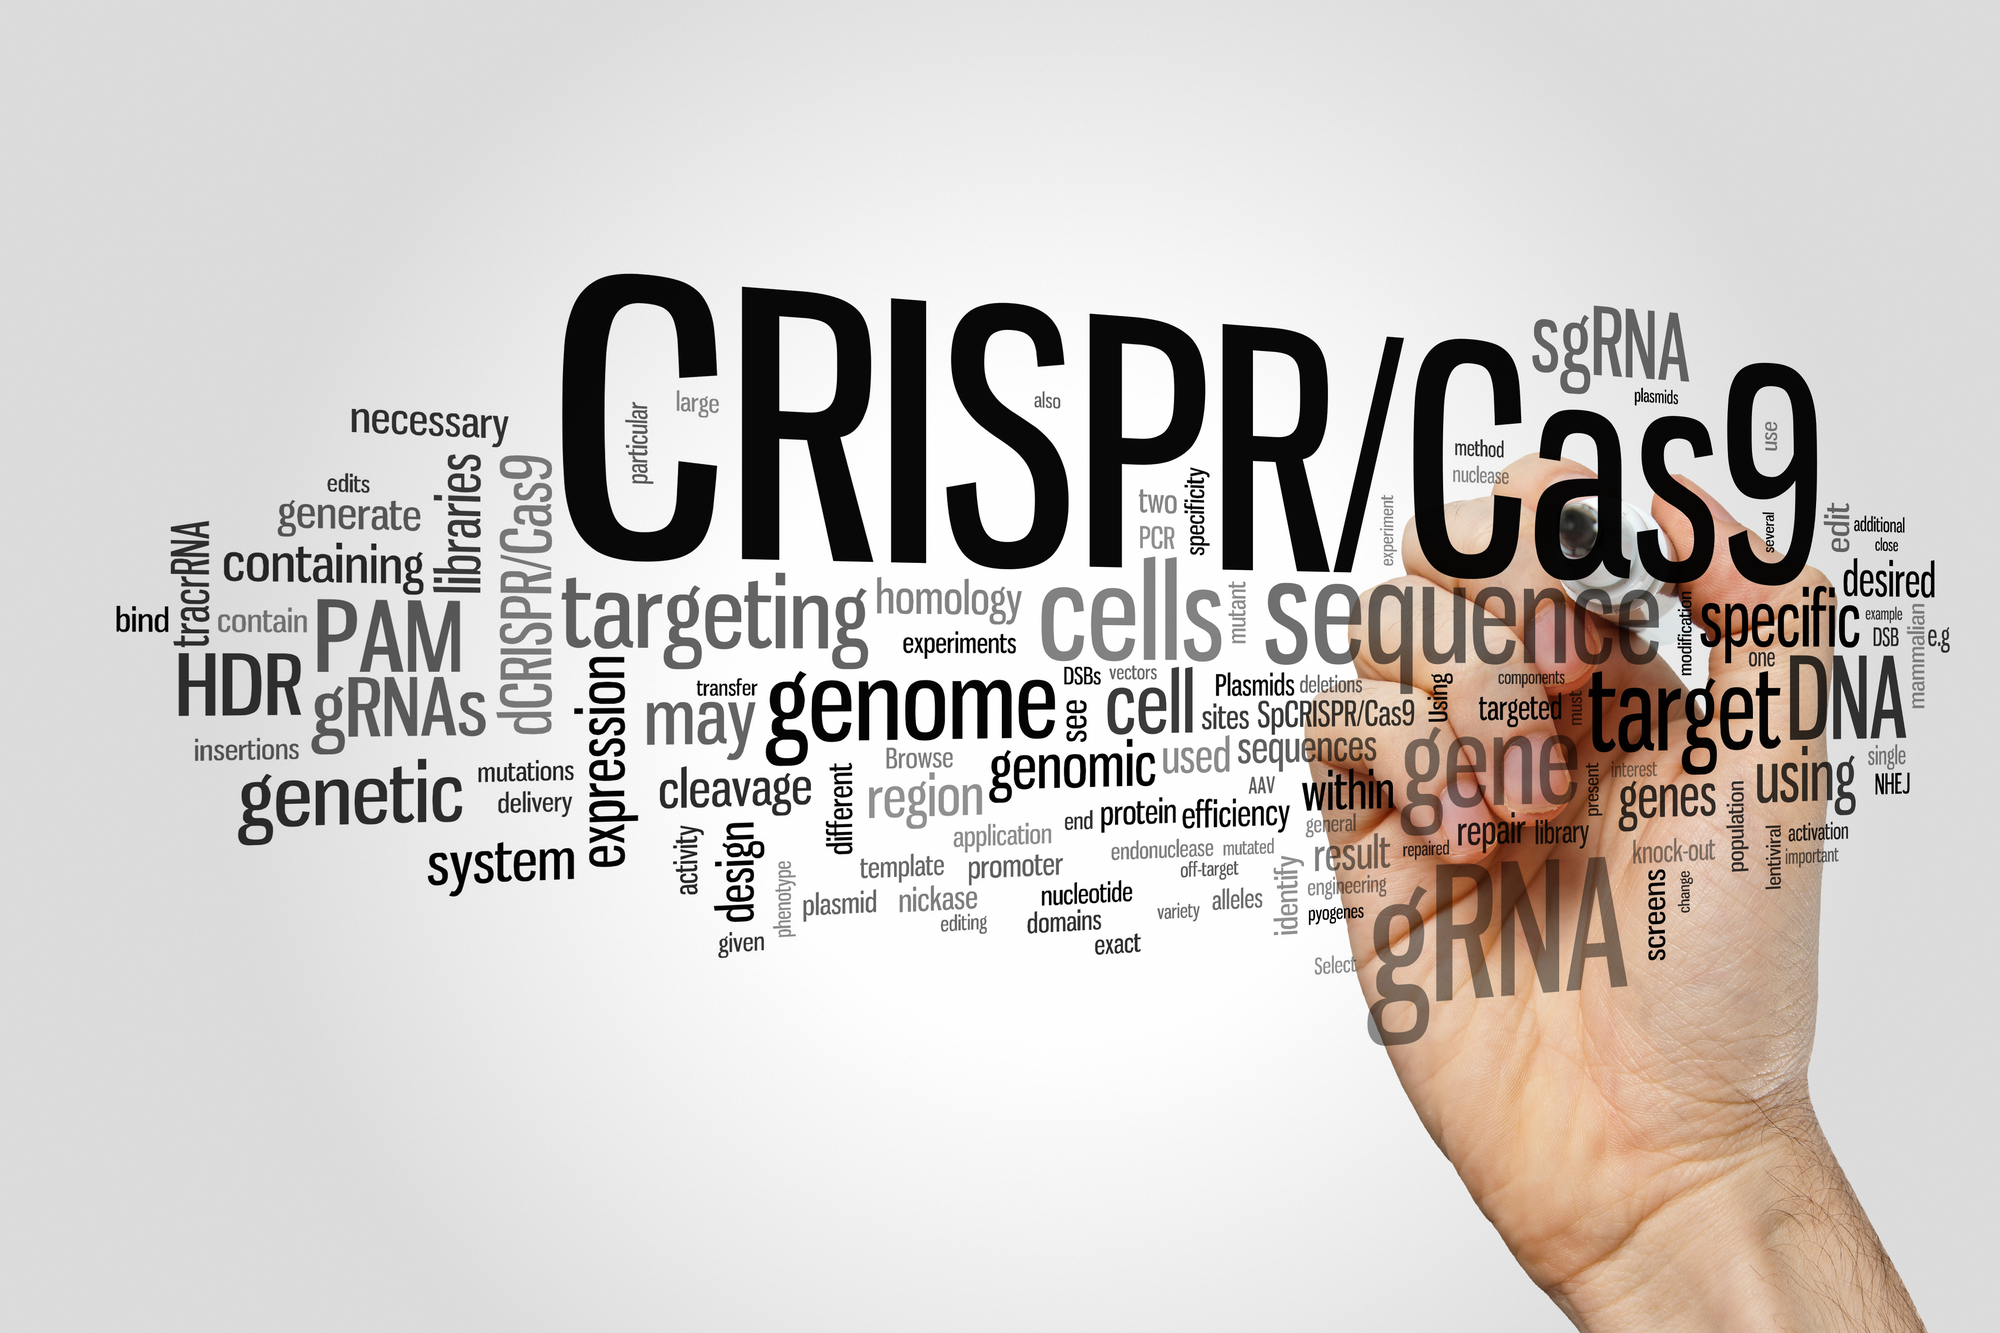 CRISPR/Cas9 system for editing, regulating and targeting genomes